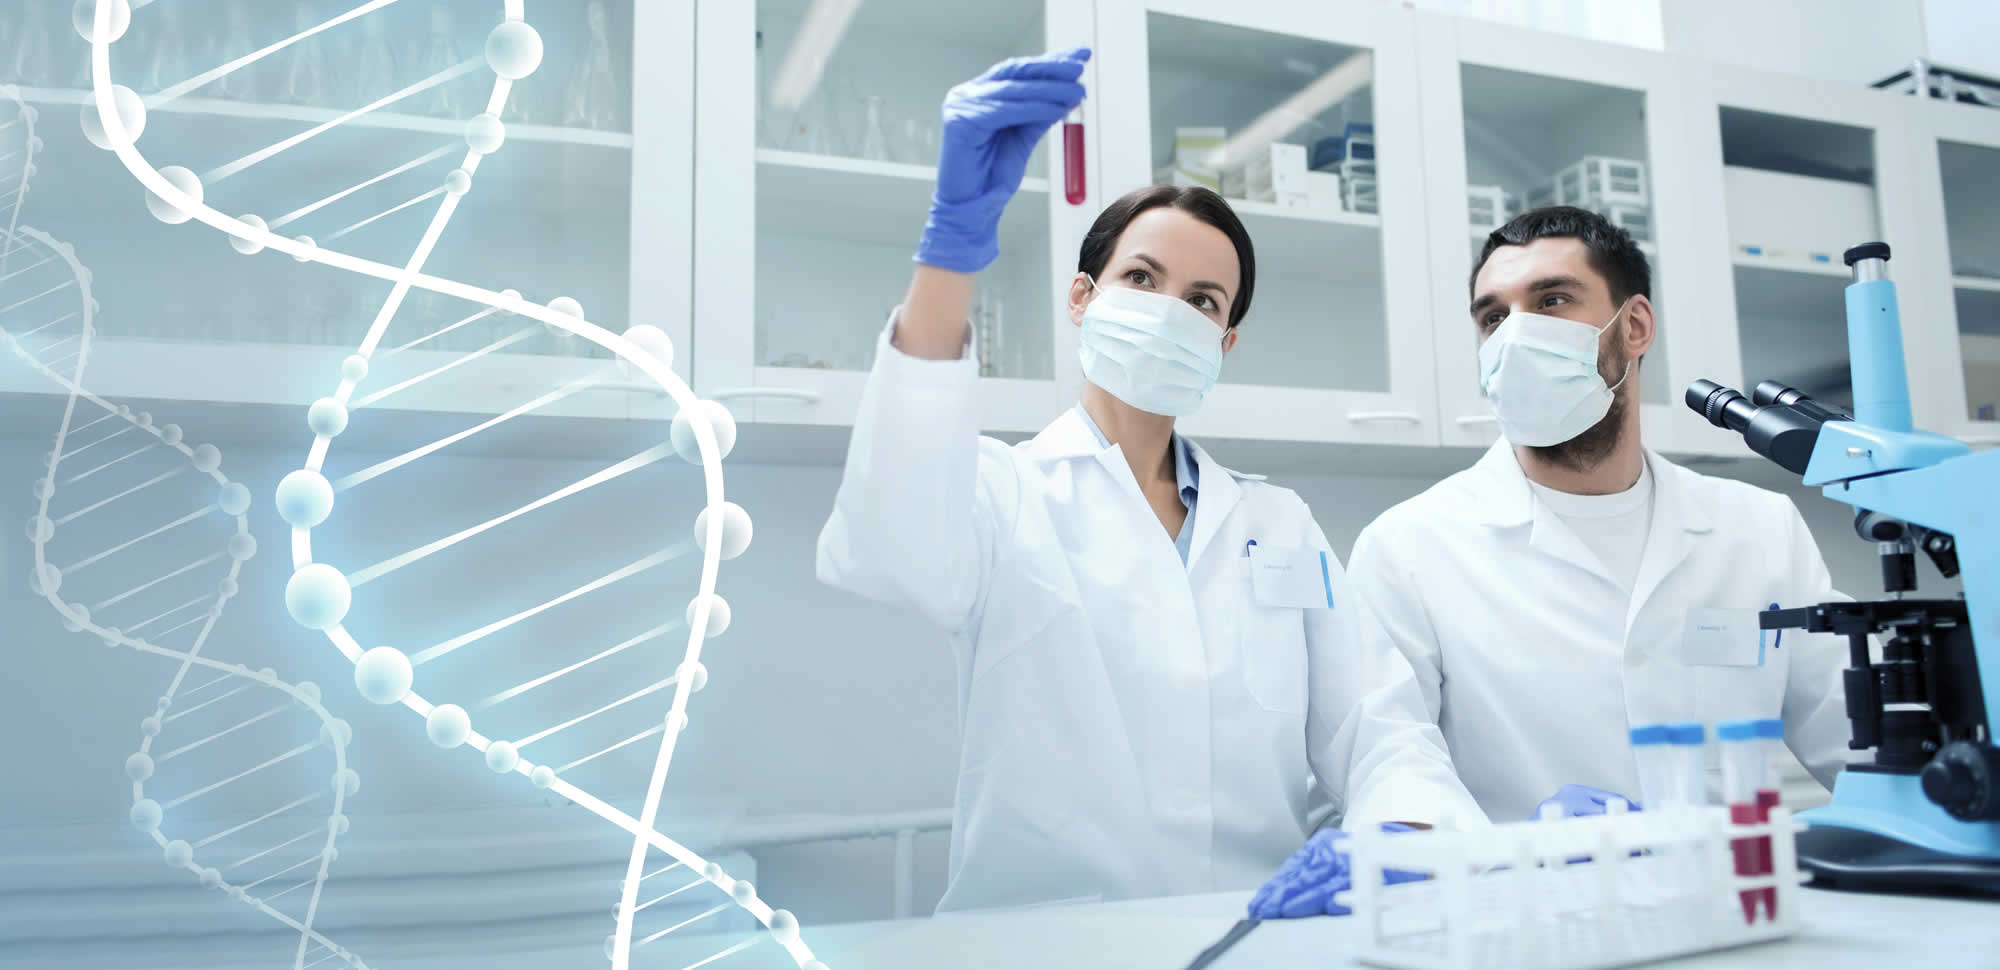 dna testing fully confidential and legal dna testing service